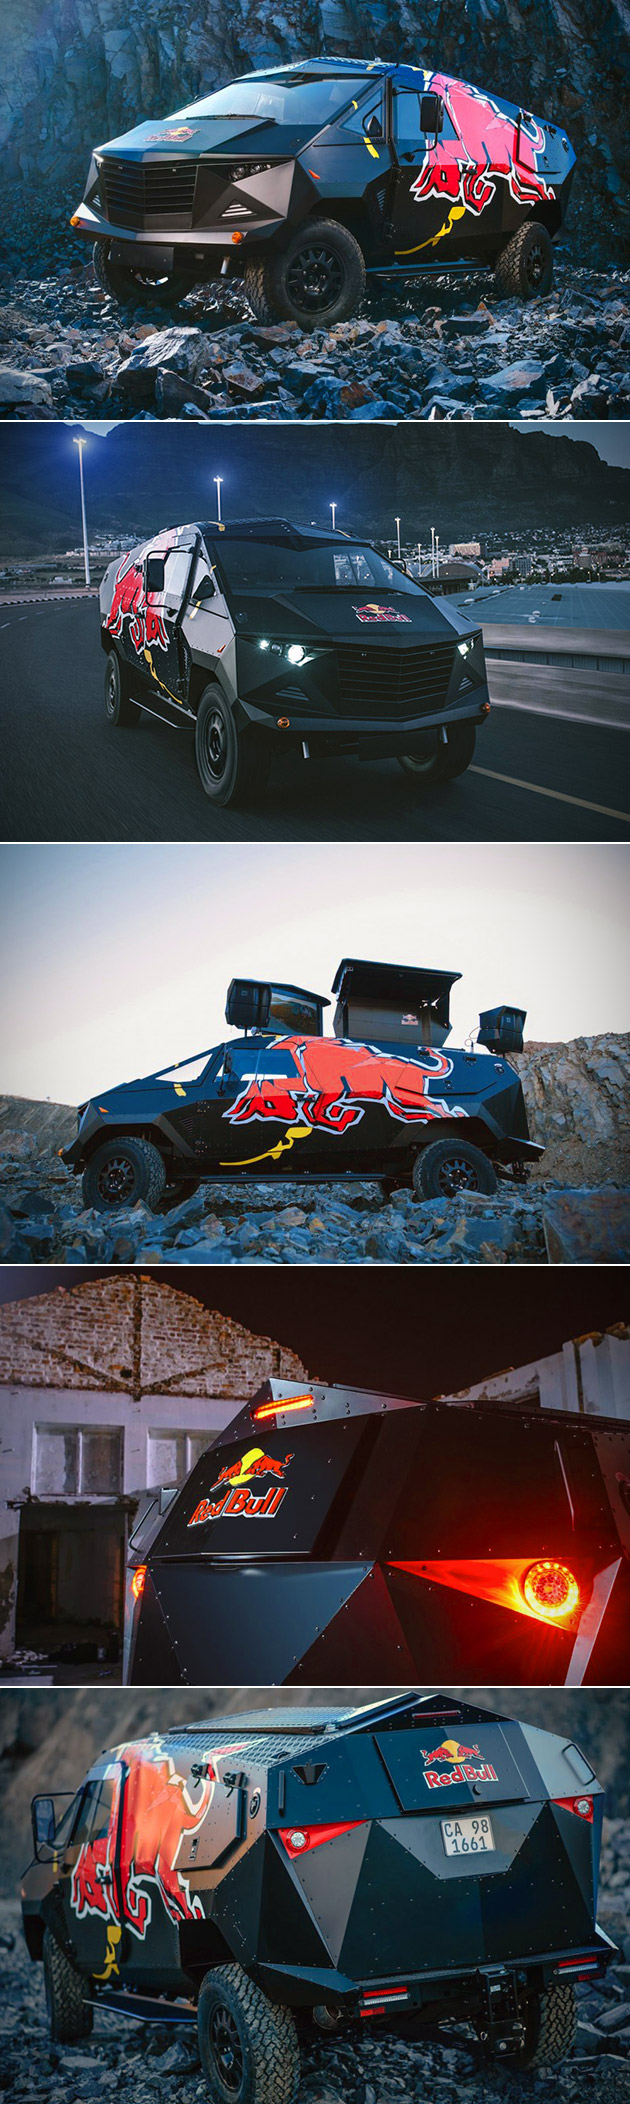 Red Bull Armored Event Vehicle